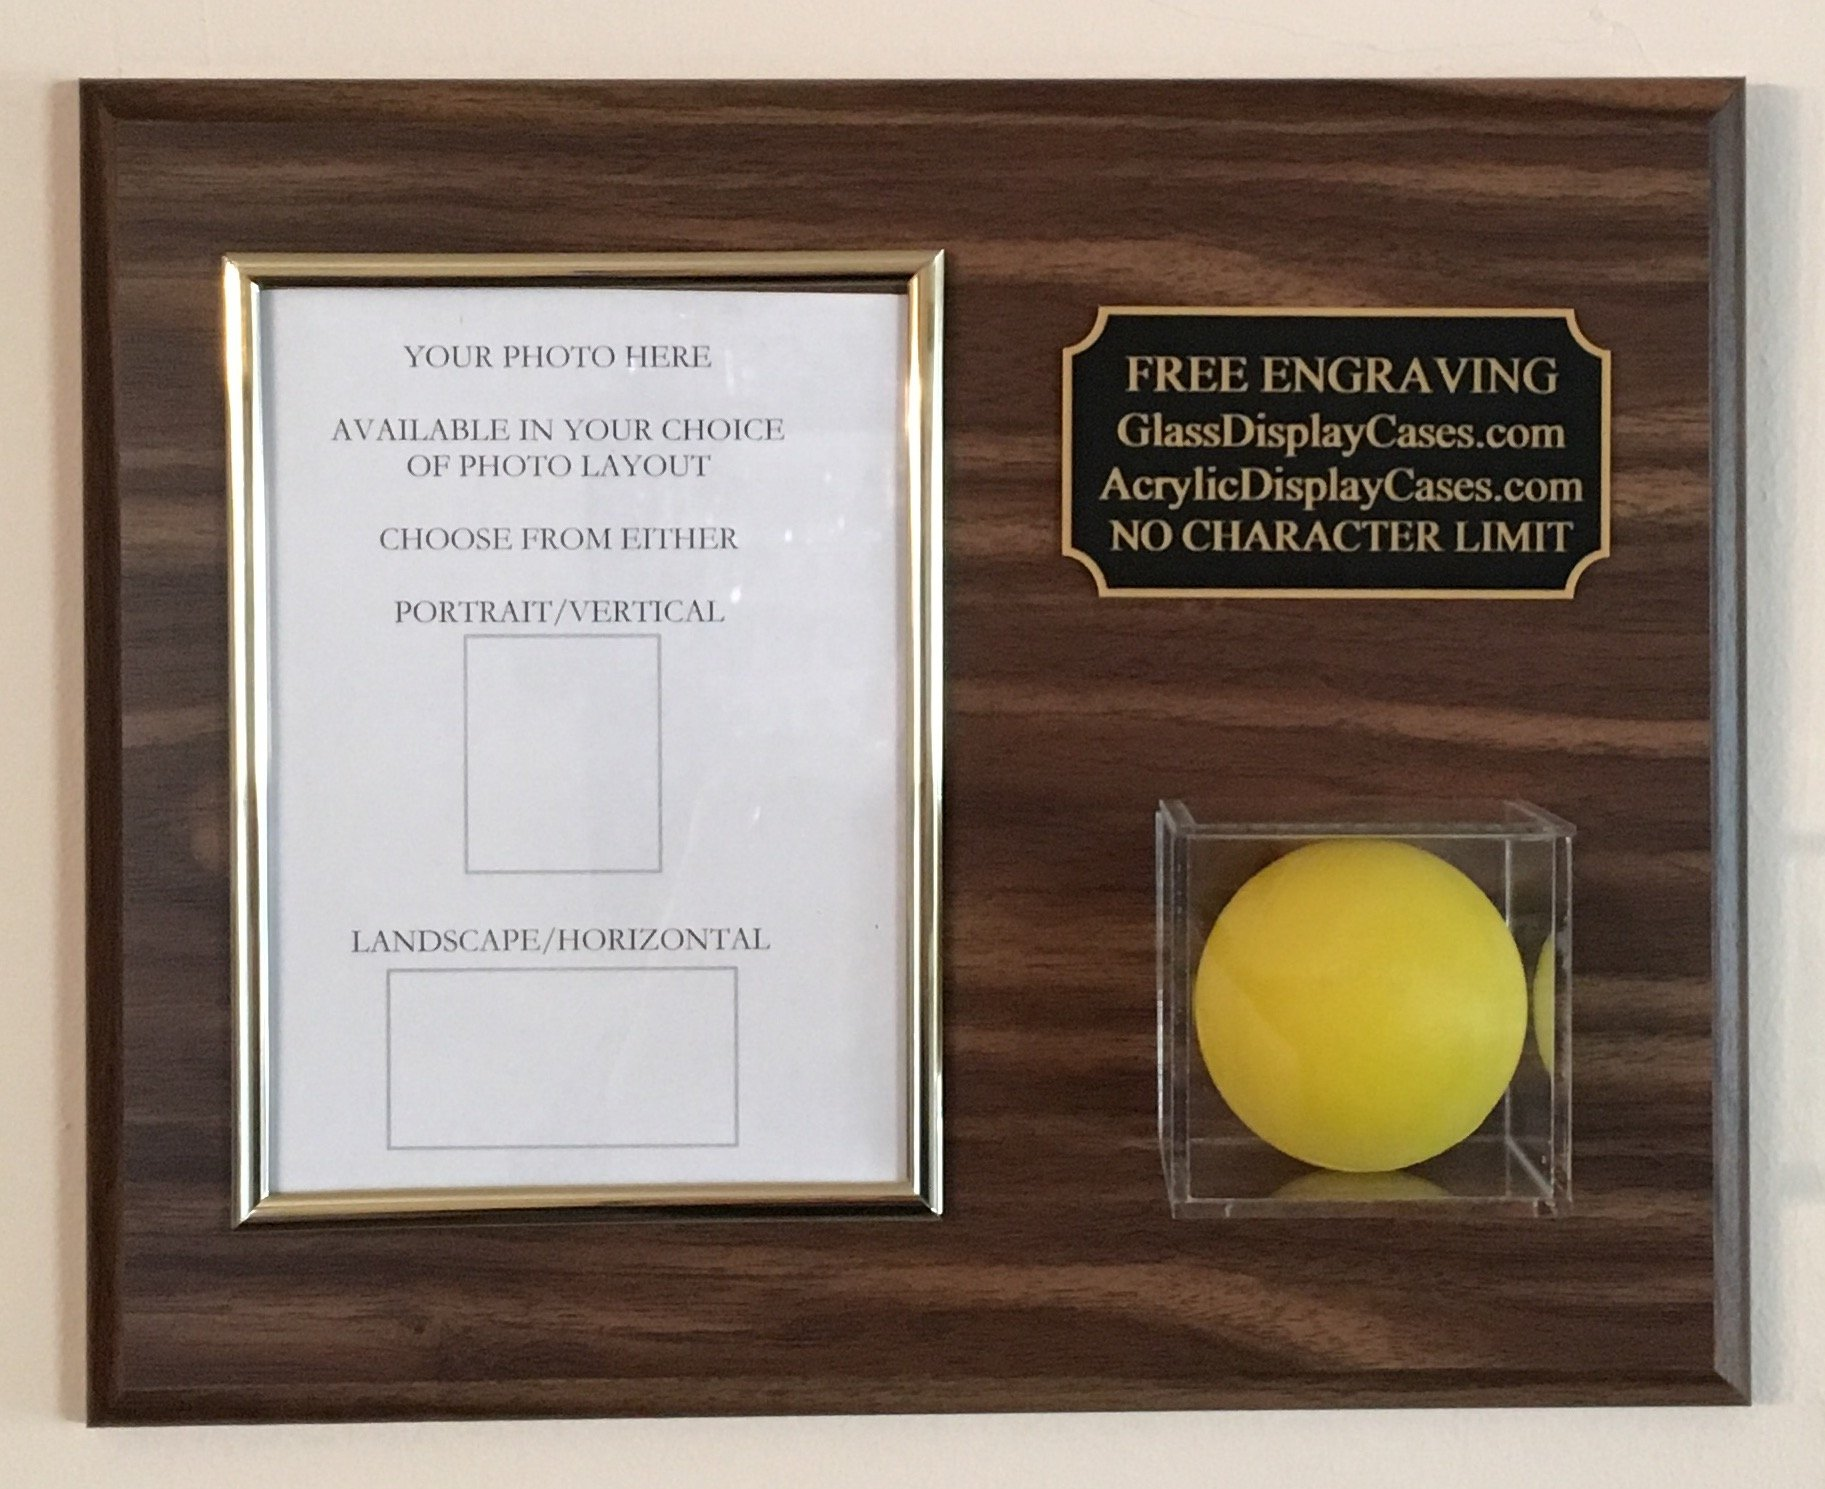 Lacrosse Ball and 5X7 Photo Vertical or Horizontal Choice Wall Display Case Plaque - Wood Color Choice - Engraved